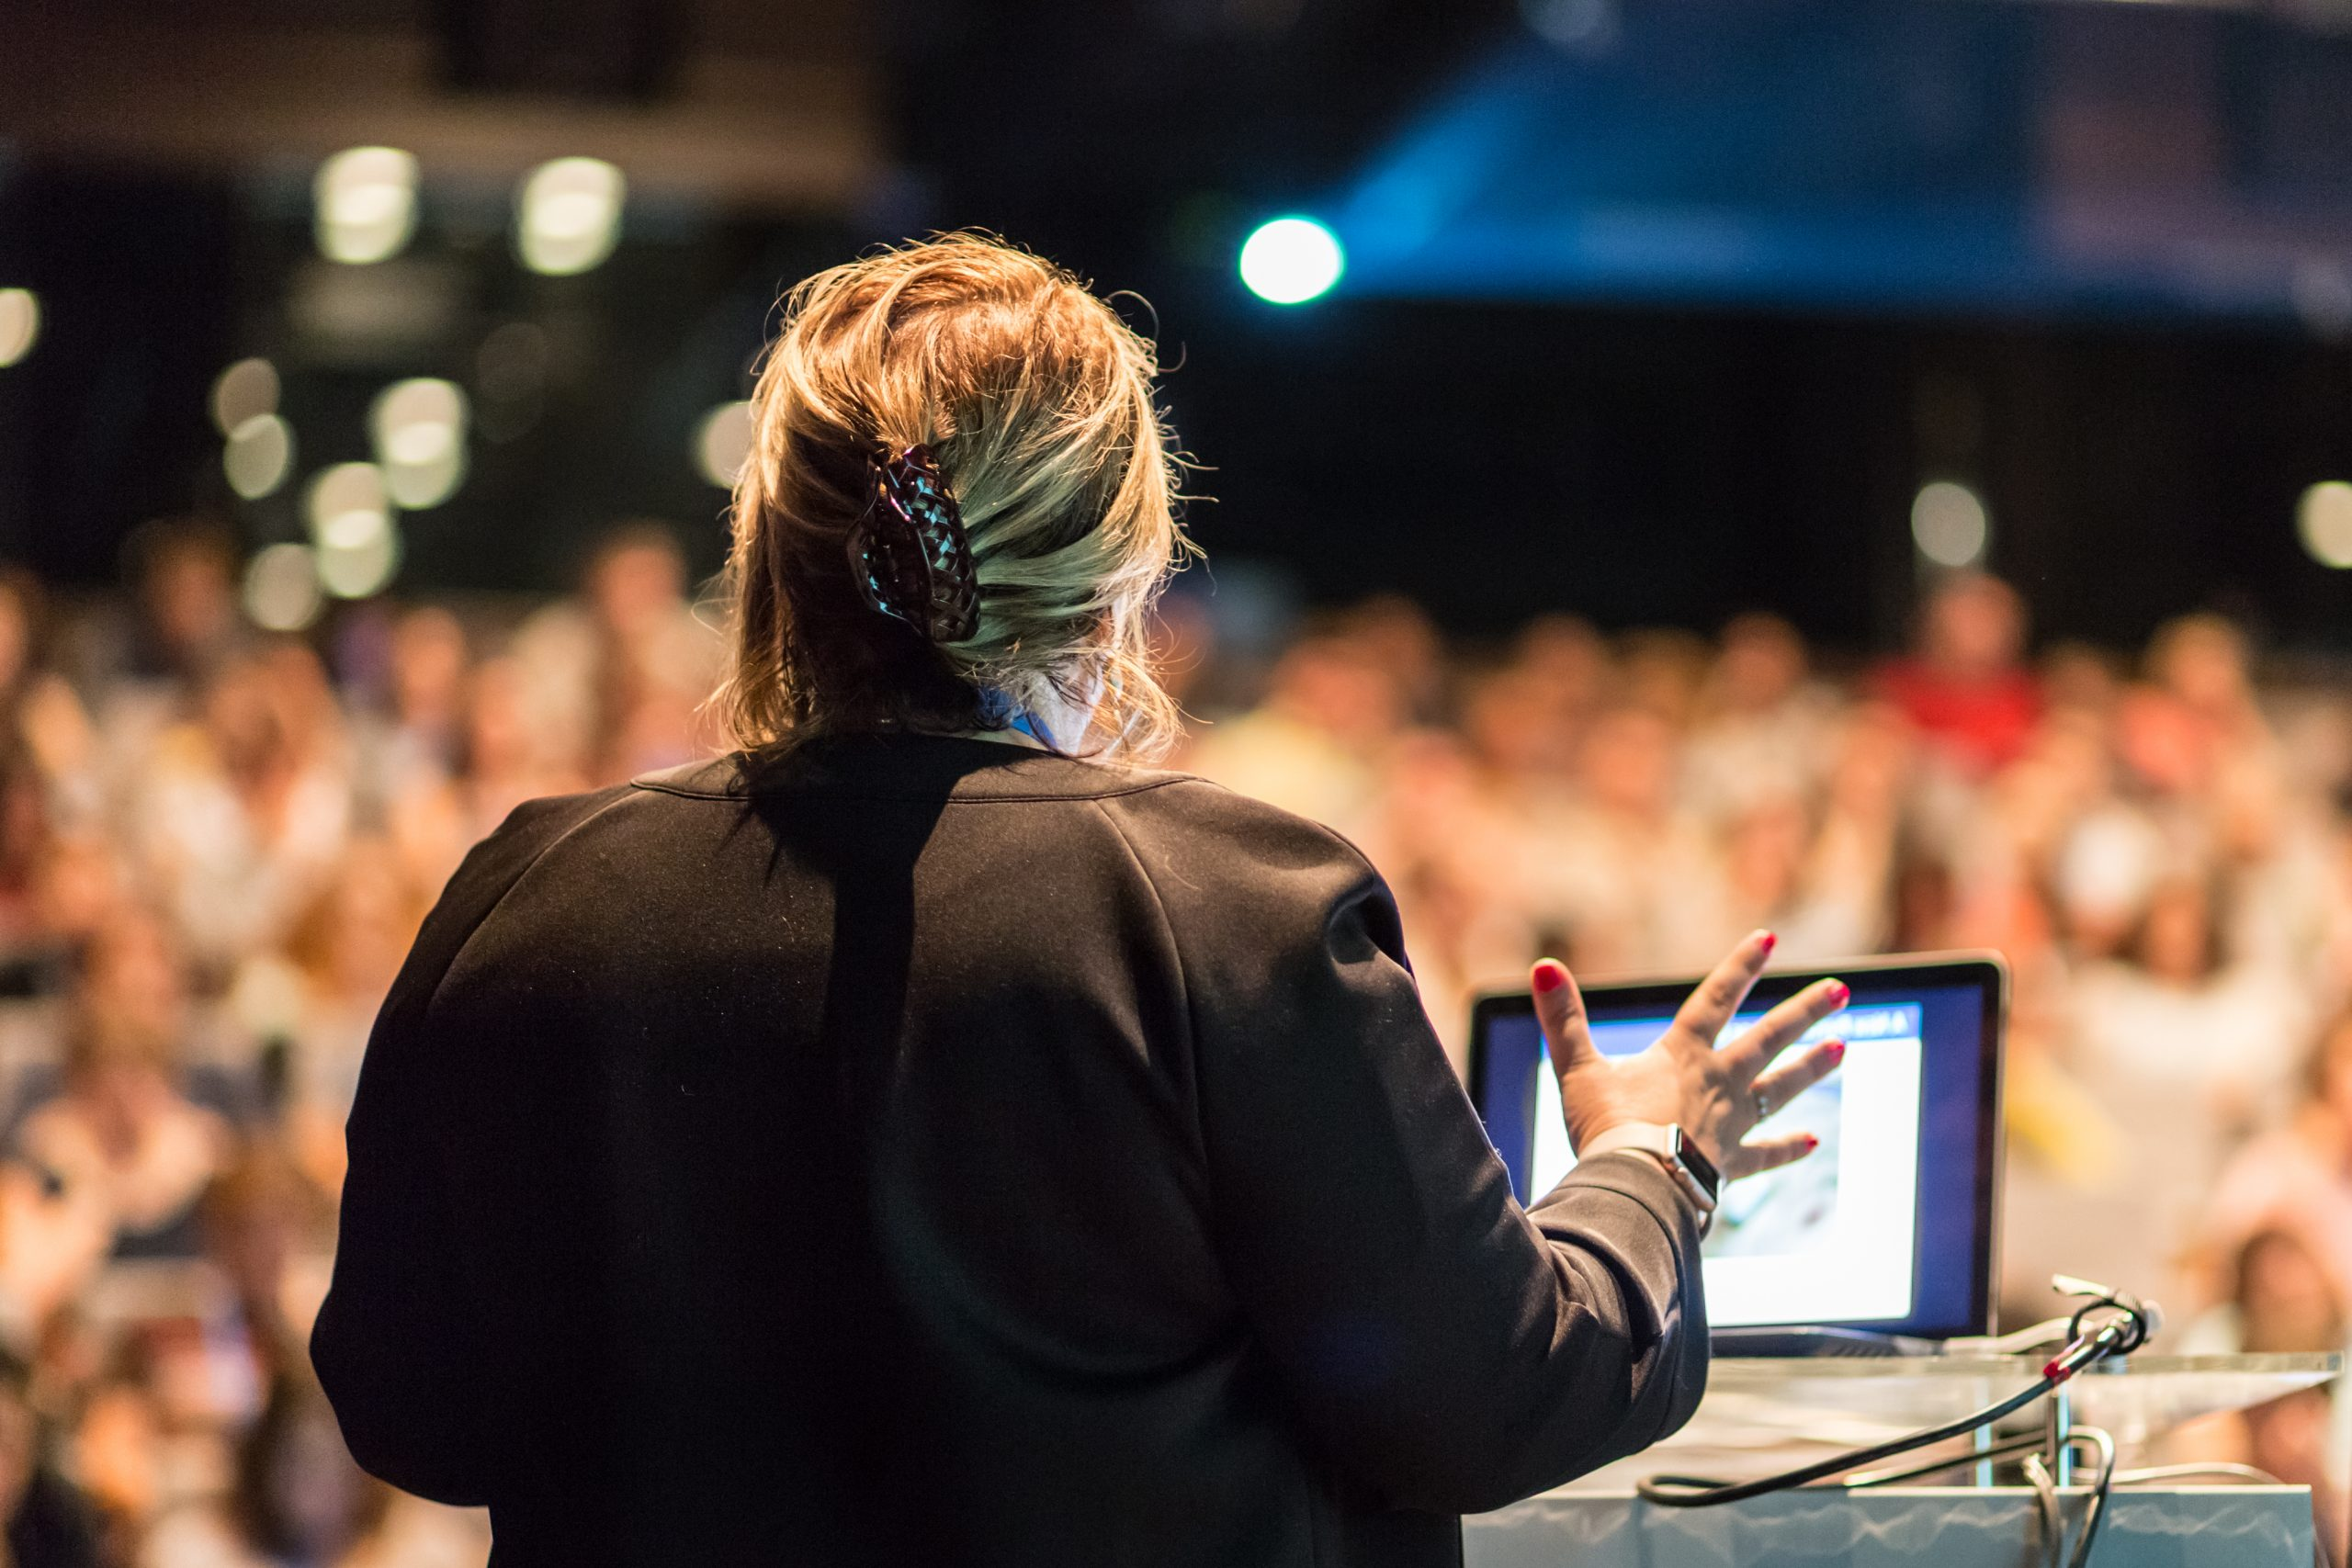 Photo of a woman speaking to a crowd.